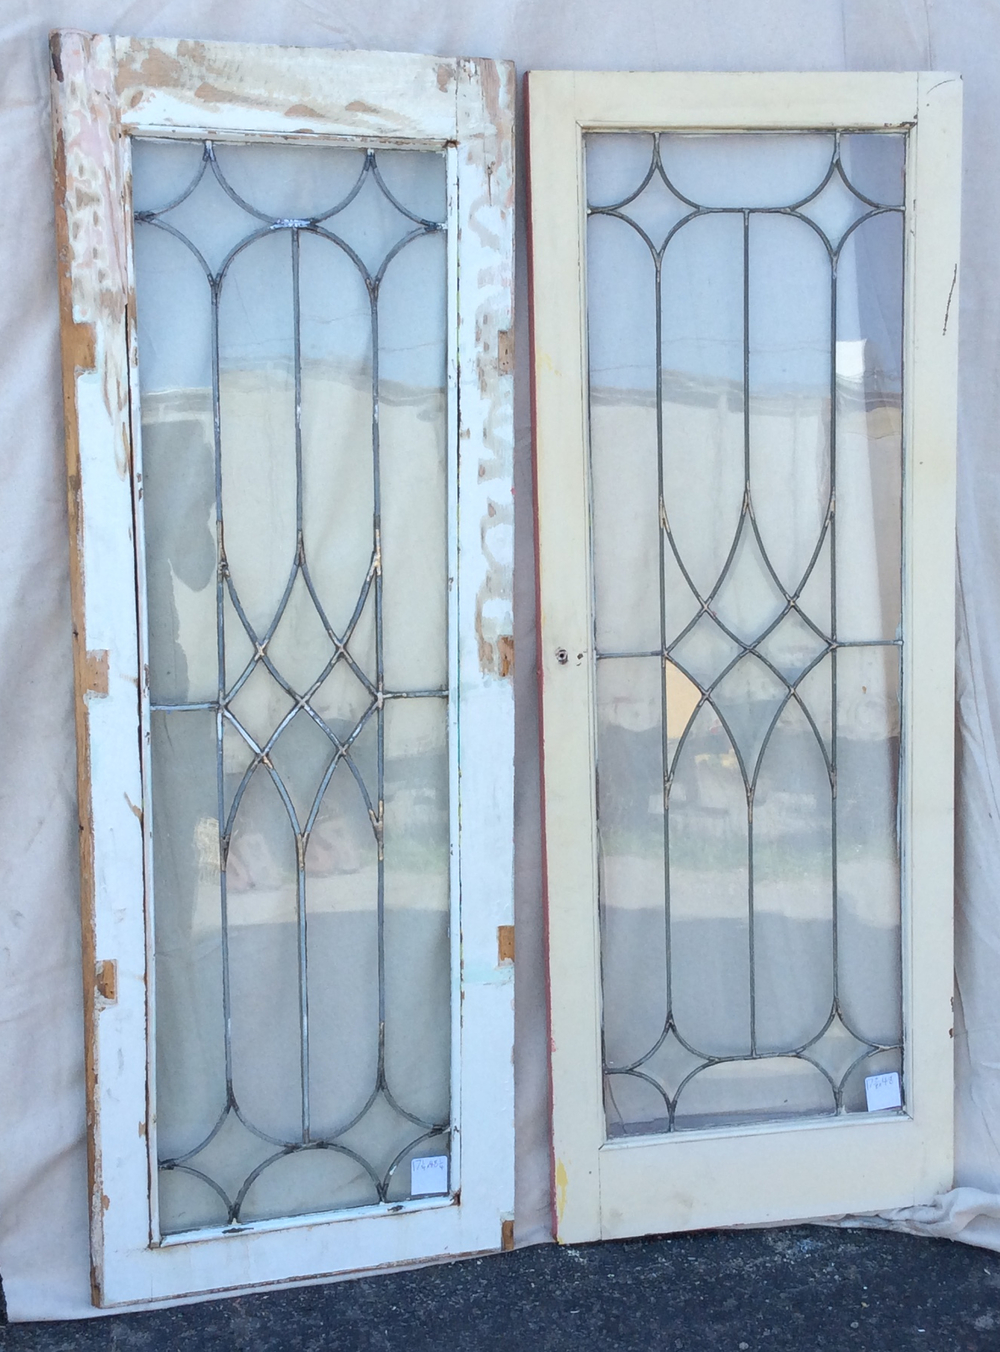 Antique Leaded Glass Windows - All Windows — Portland Architectural Salvage